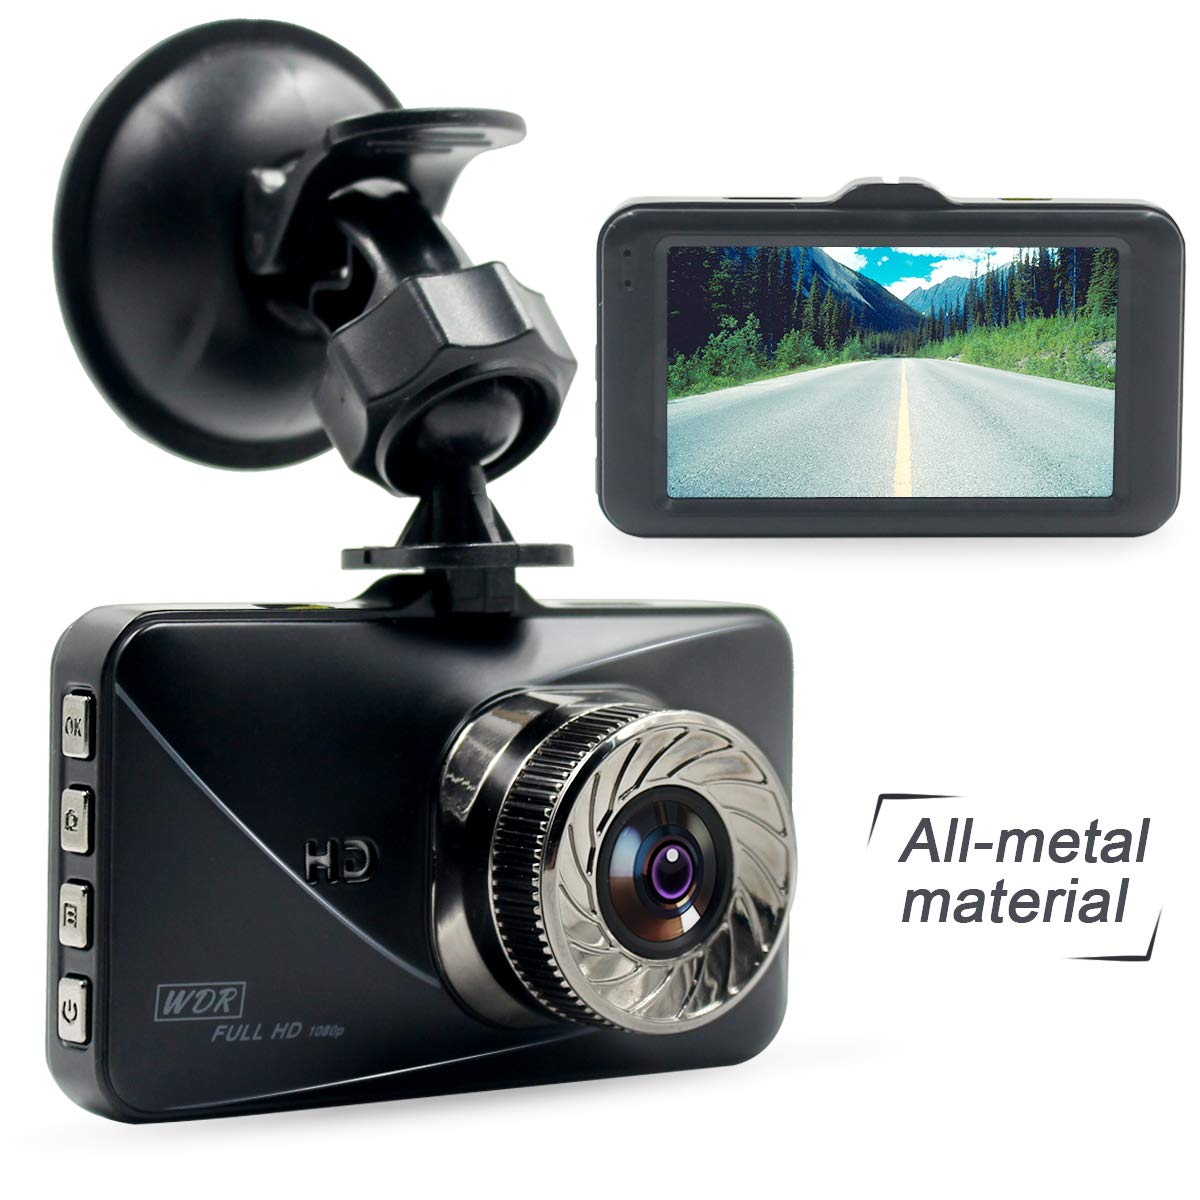 Poetele Metal Shell Dash Cam,Small Dashboard Car Camera Recorder with Full HD 1080P,6-Lane 170/° Wide Angle Lens,3 LCD,G-Sensor,WDR,Parking Monitor,Loop Recording and Night Vision 3 LCD Poetele-R